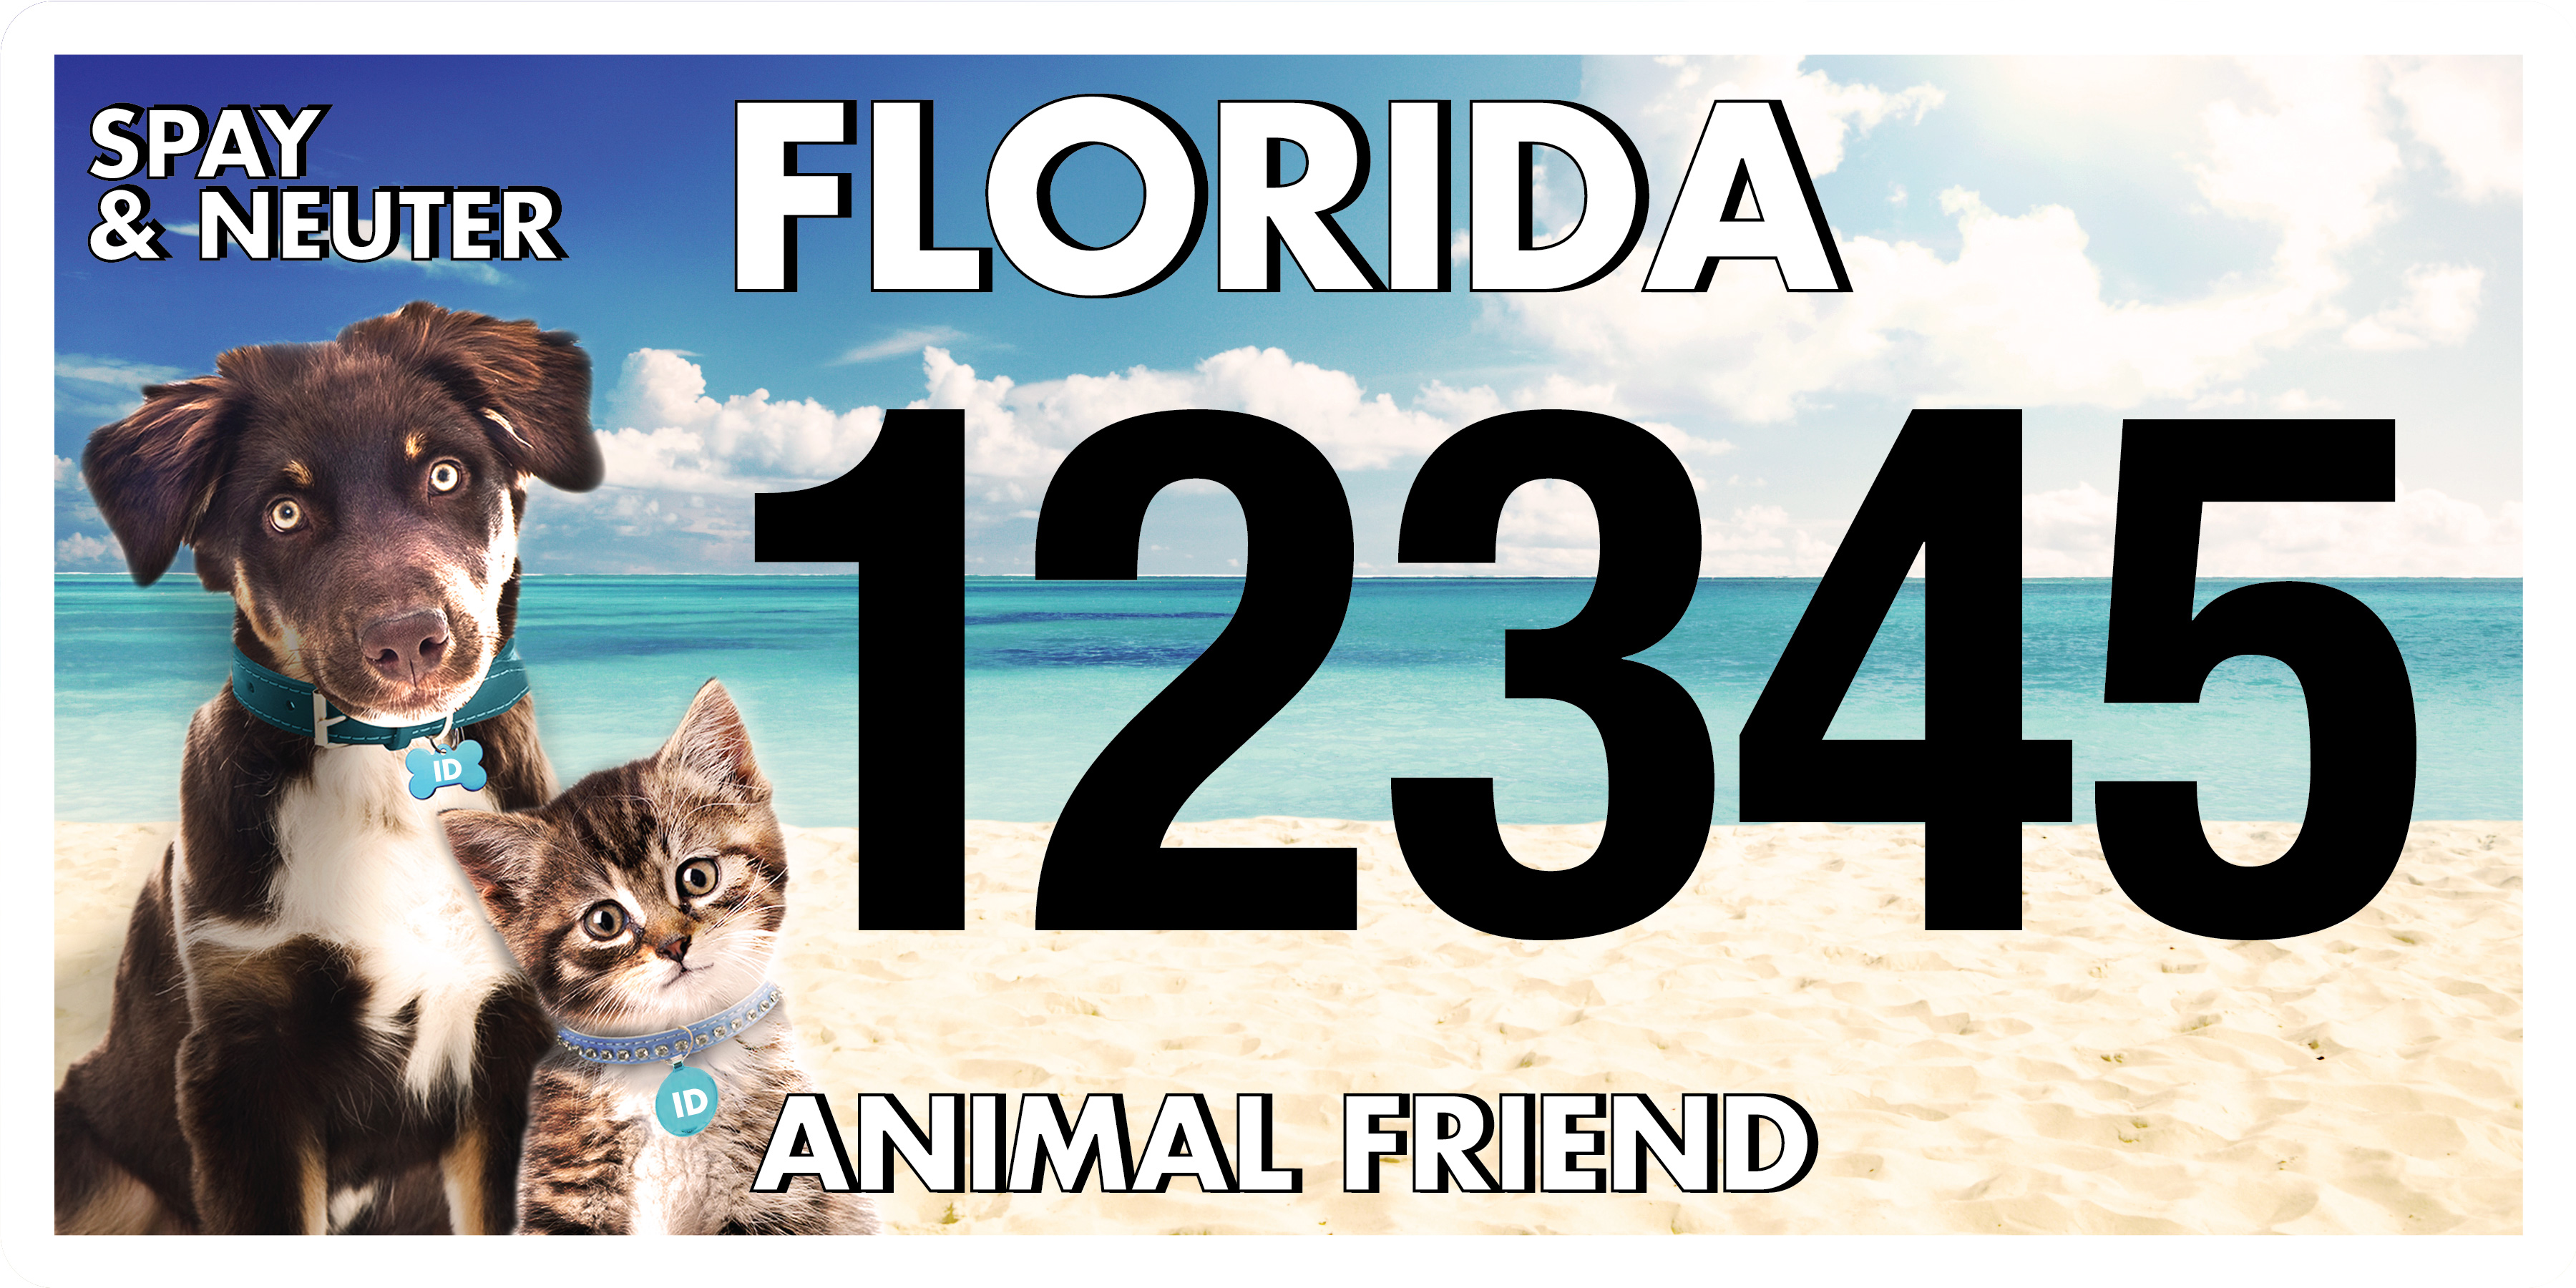 Purchase A Plate Florida Animal Friend